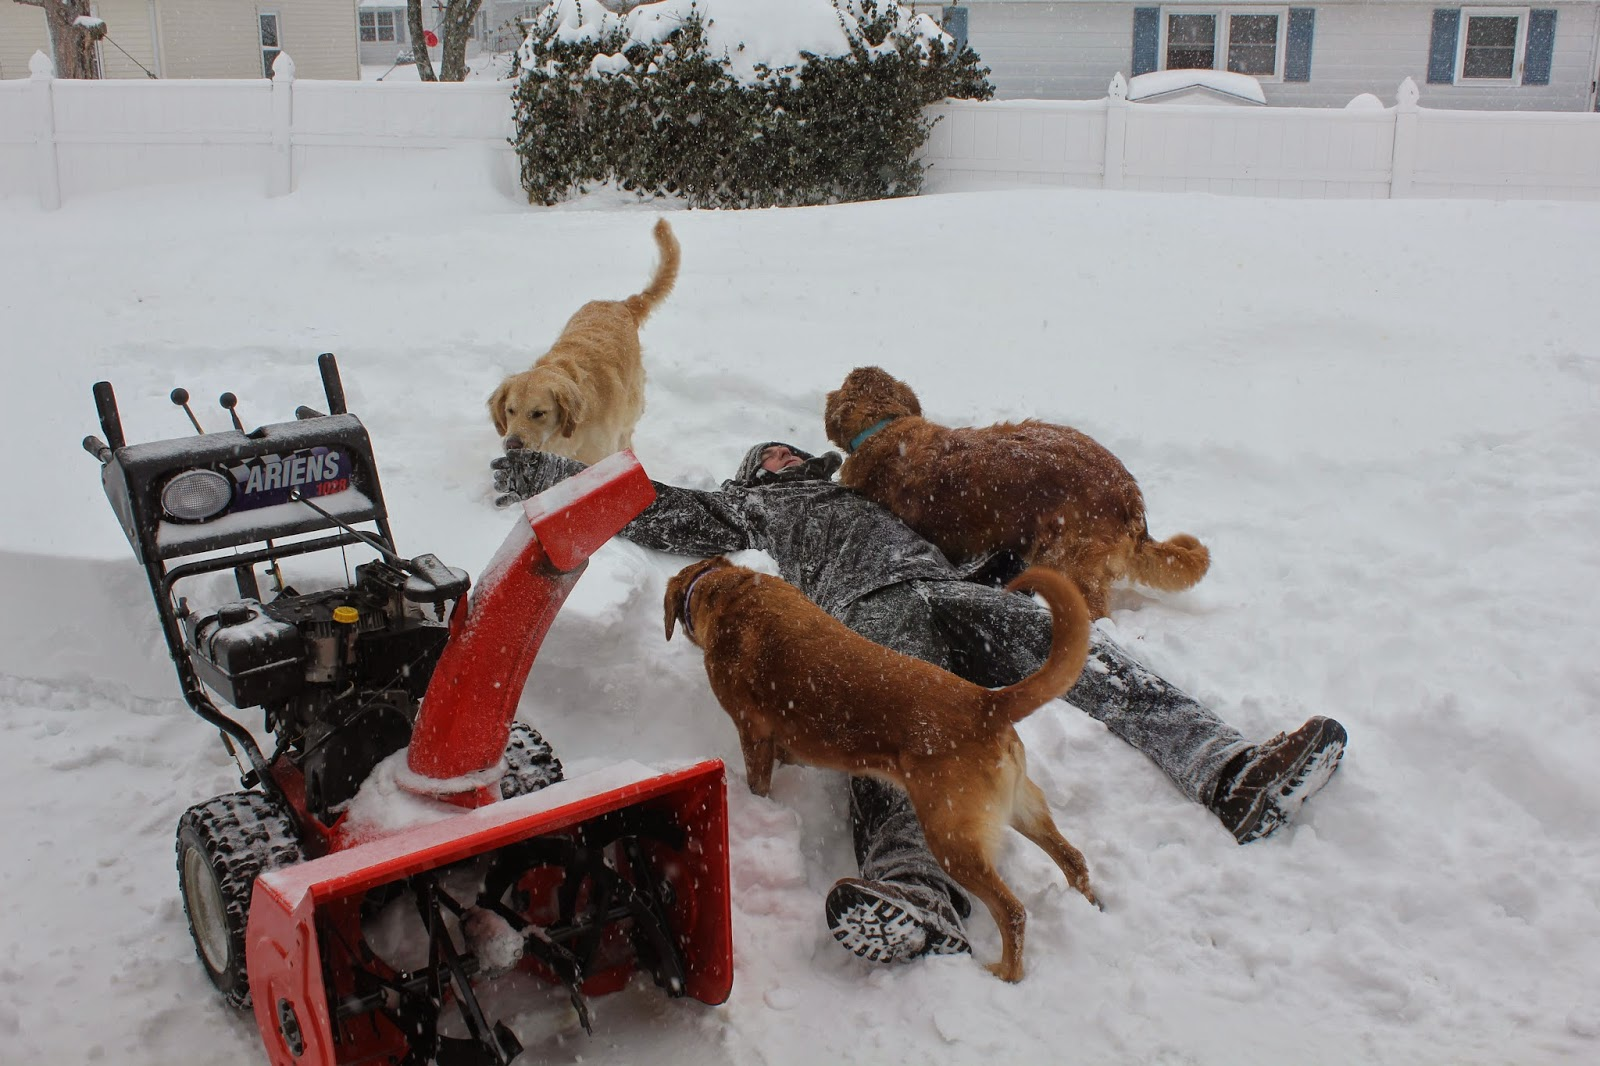 dogs having fun in snow with owner